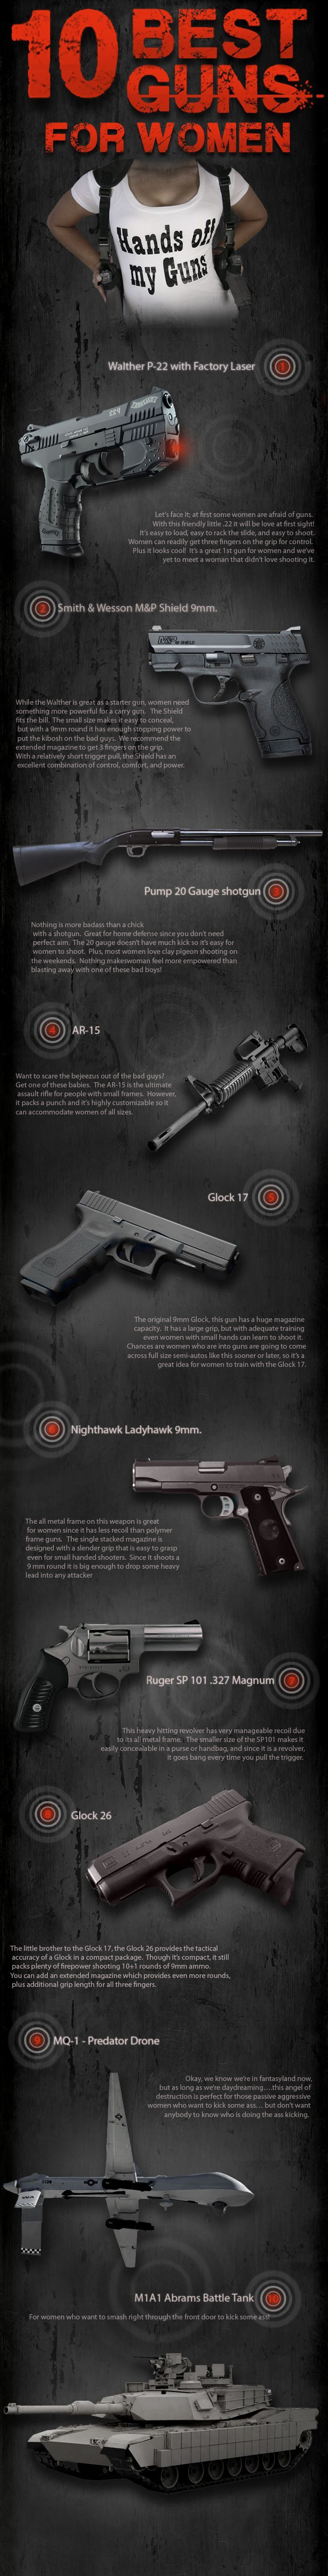 The 10 Best Guns for Women. Love it. I have the very first one on there!!!!